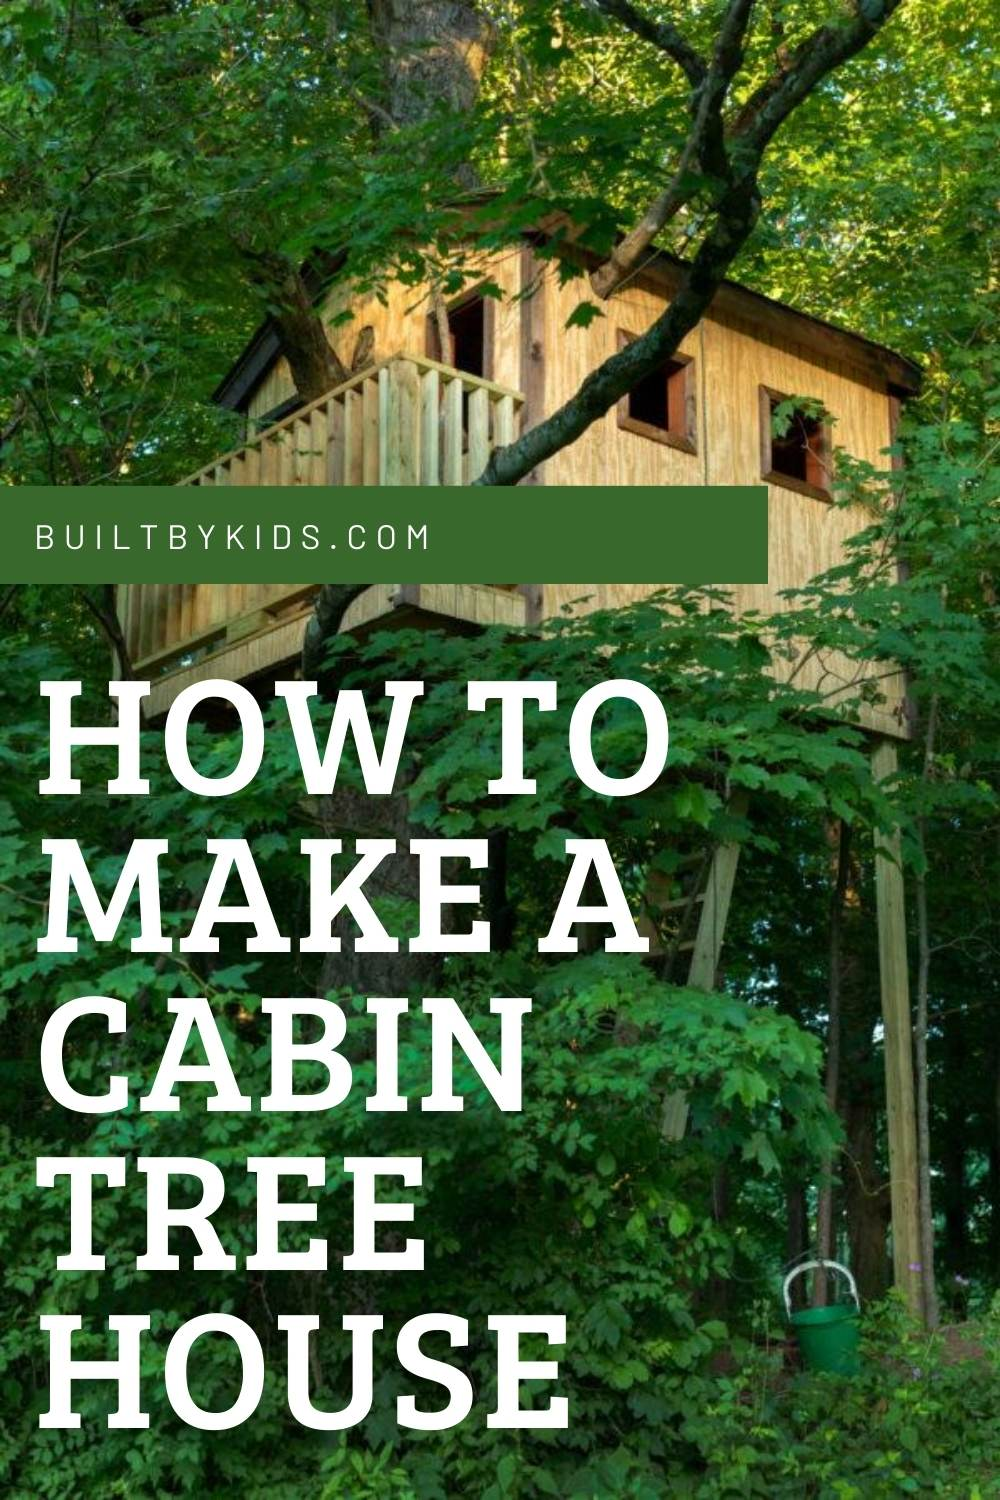 How We Built a Cabin Treehouse | Built by Kids in 2020 ...